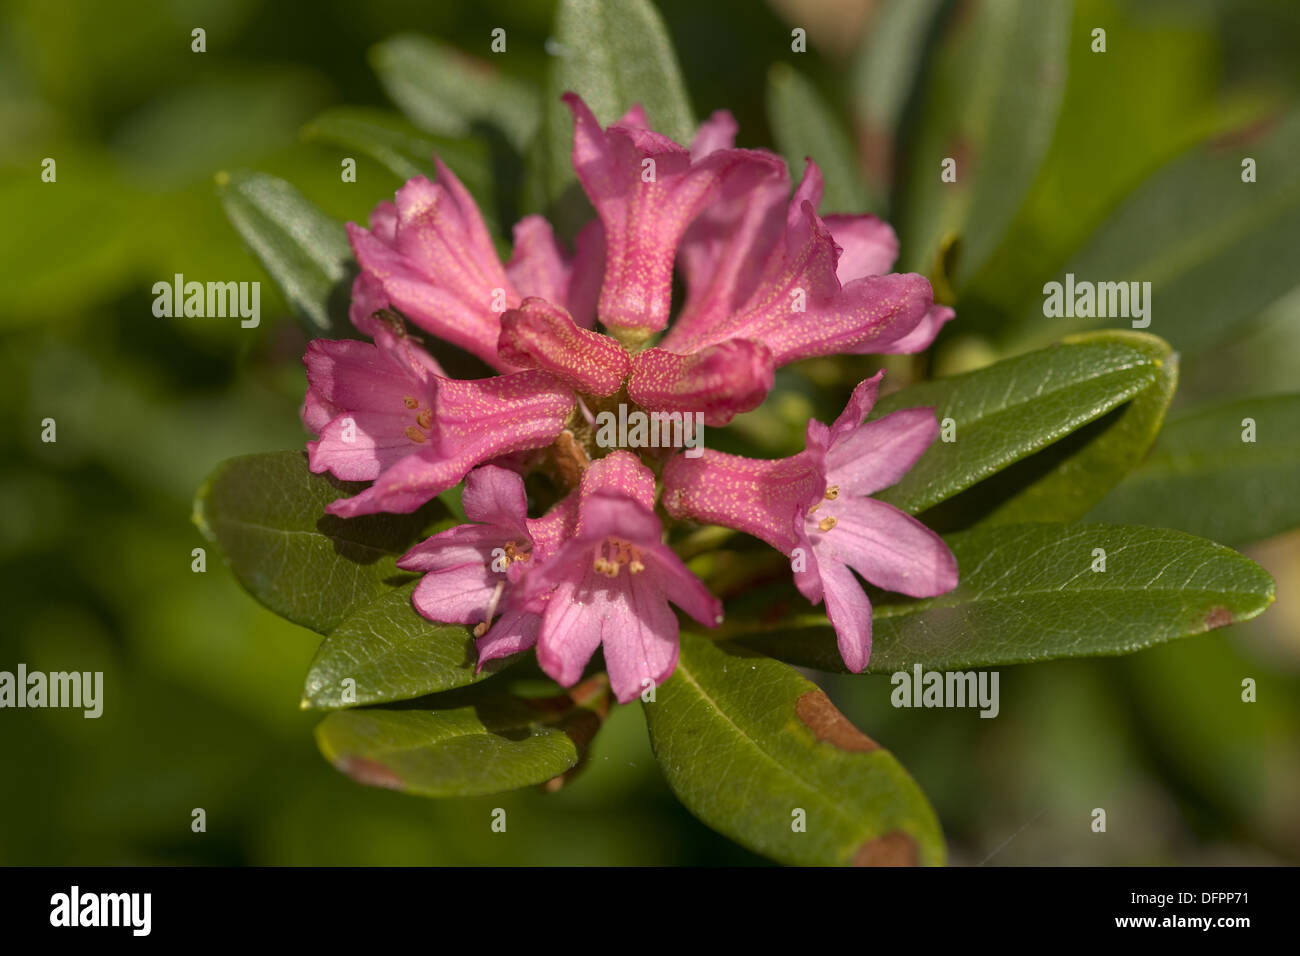 rusty-leaved alpenrose, rhododendron ferrugineum - Stock Image